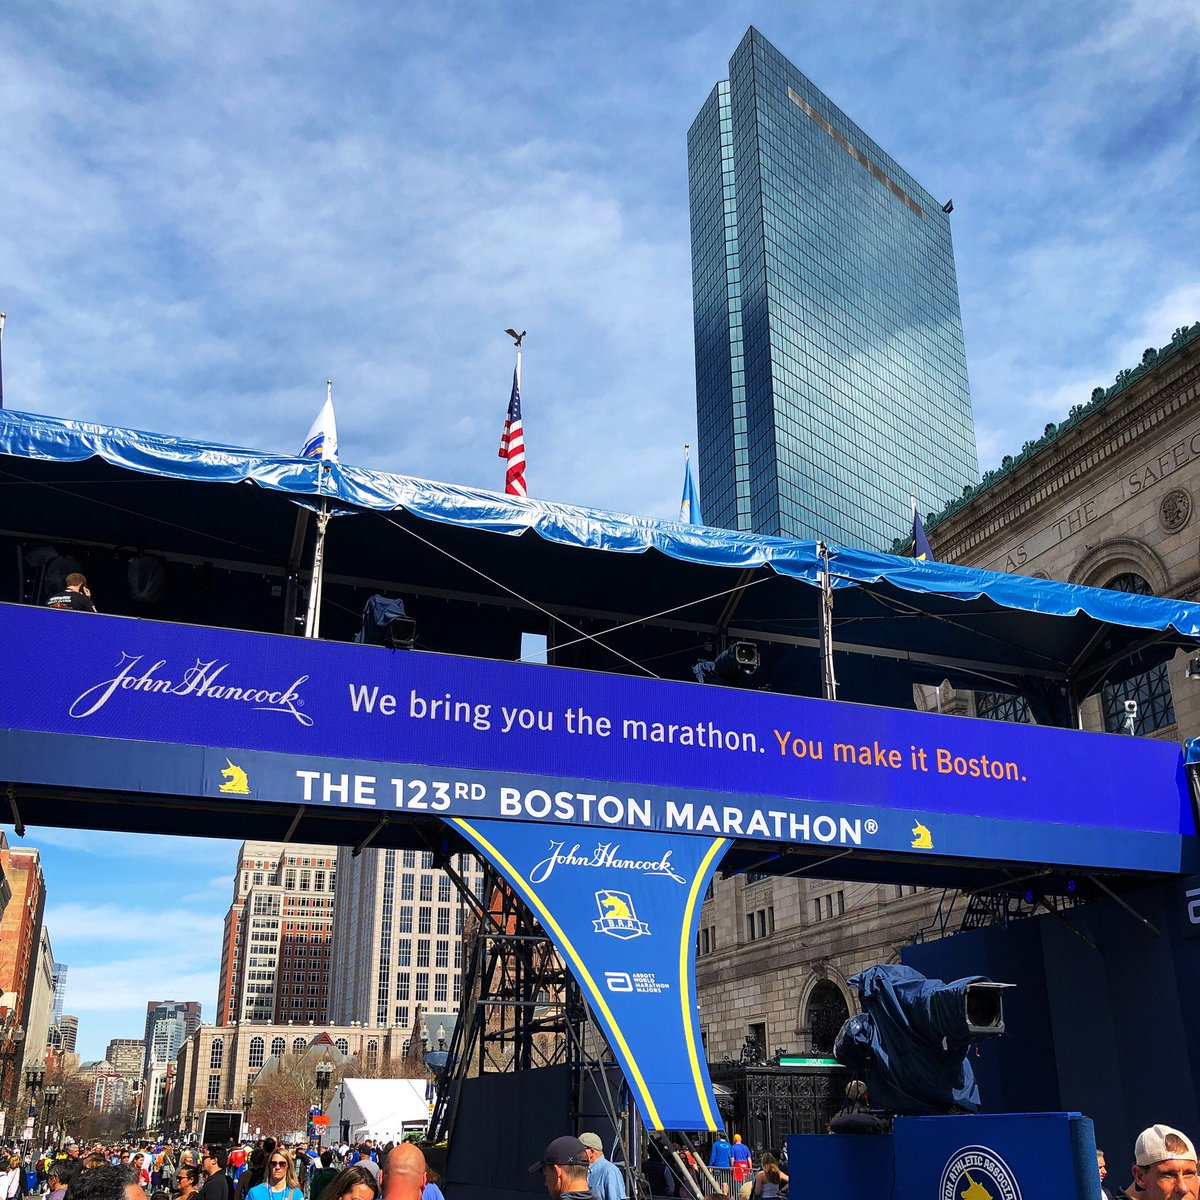 Less than 24 hours until the 123rd Boston Marathon! <br>http://pic.twitter.com/CXTmver2fK – à Copley Square